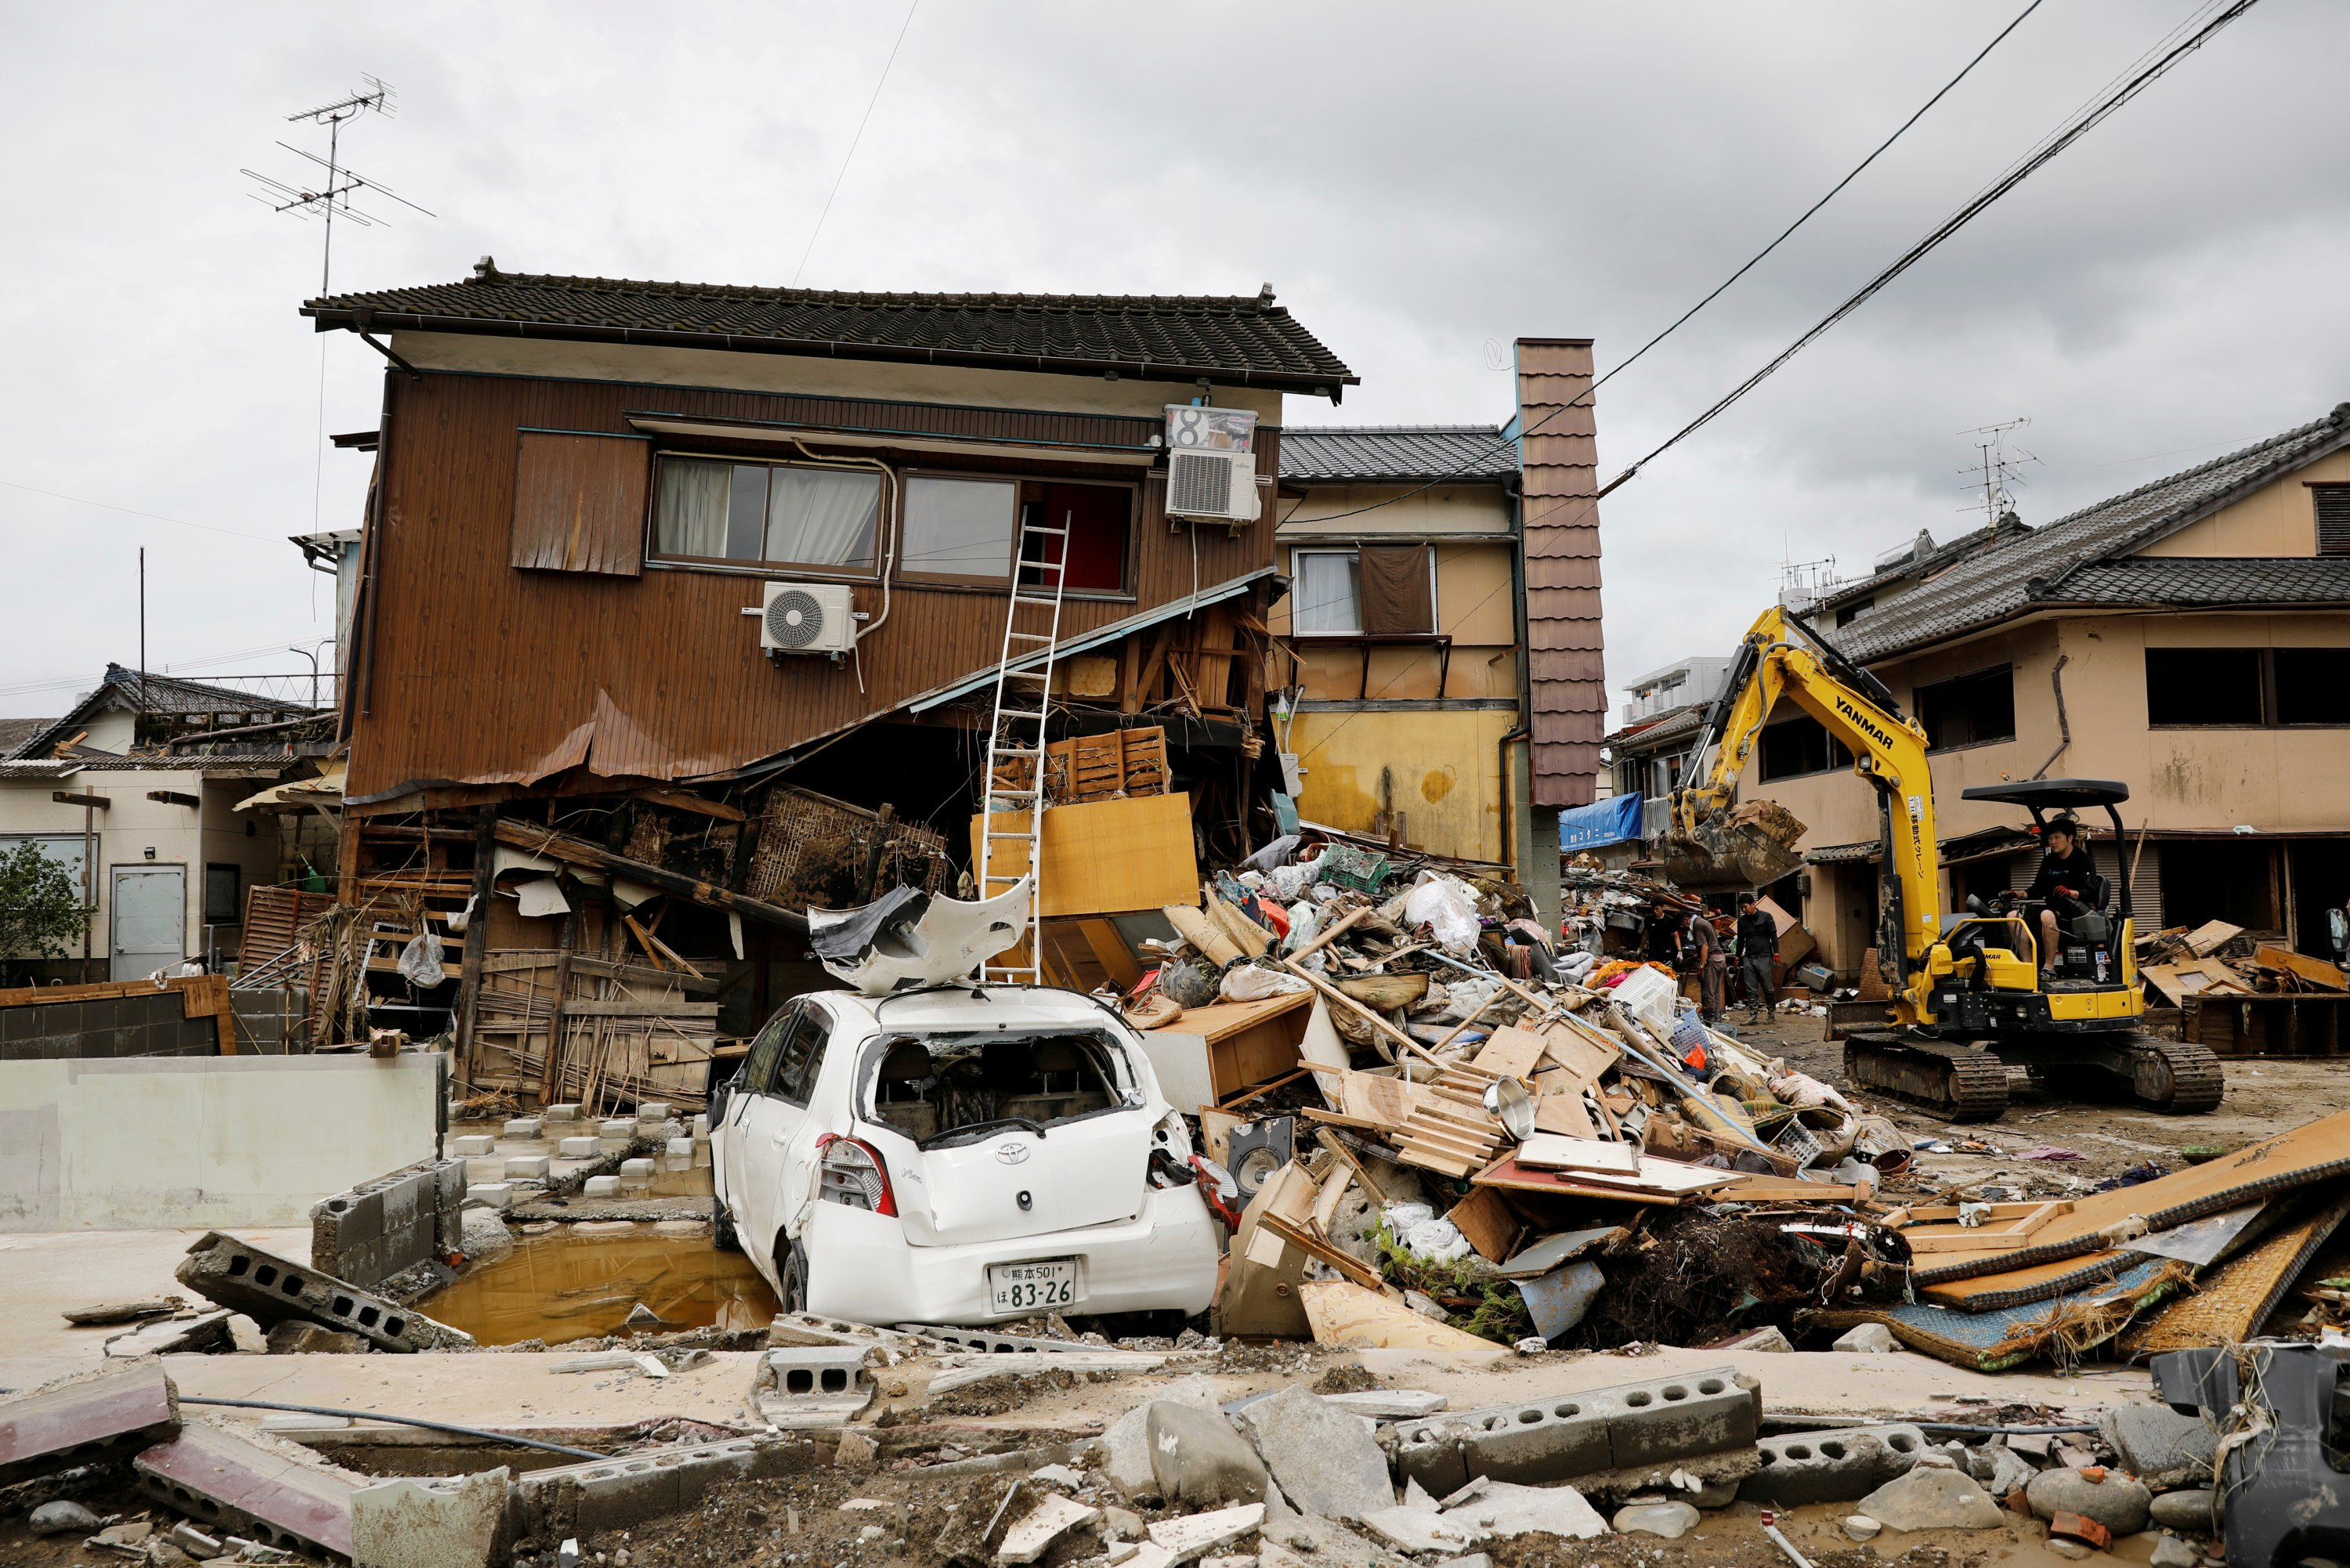 An excavator clears up debris next to a damaged house after floods caused by torrential rain in Hitoyoshi, Kumamoto Prefecture, southwestern Japan, July 8, 2020. (Reuters Photo)